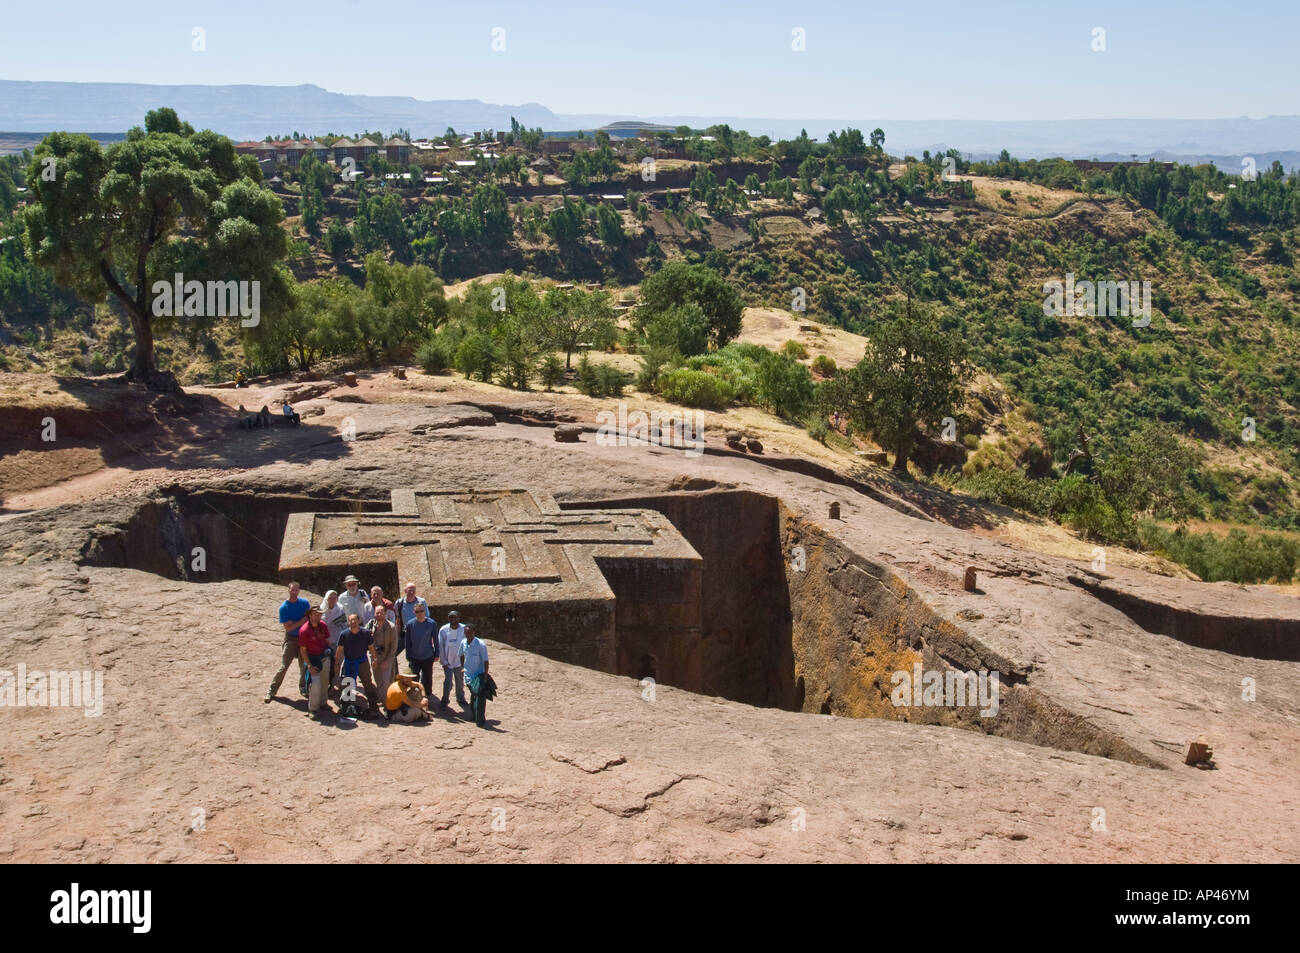 A group of tourists at the Bete Giyorgis or Church of St. George monolithic church in Lalibela. - Stock Image